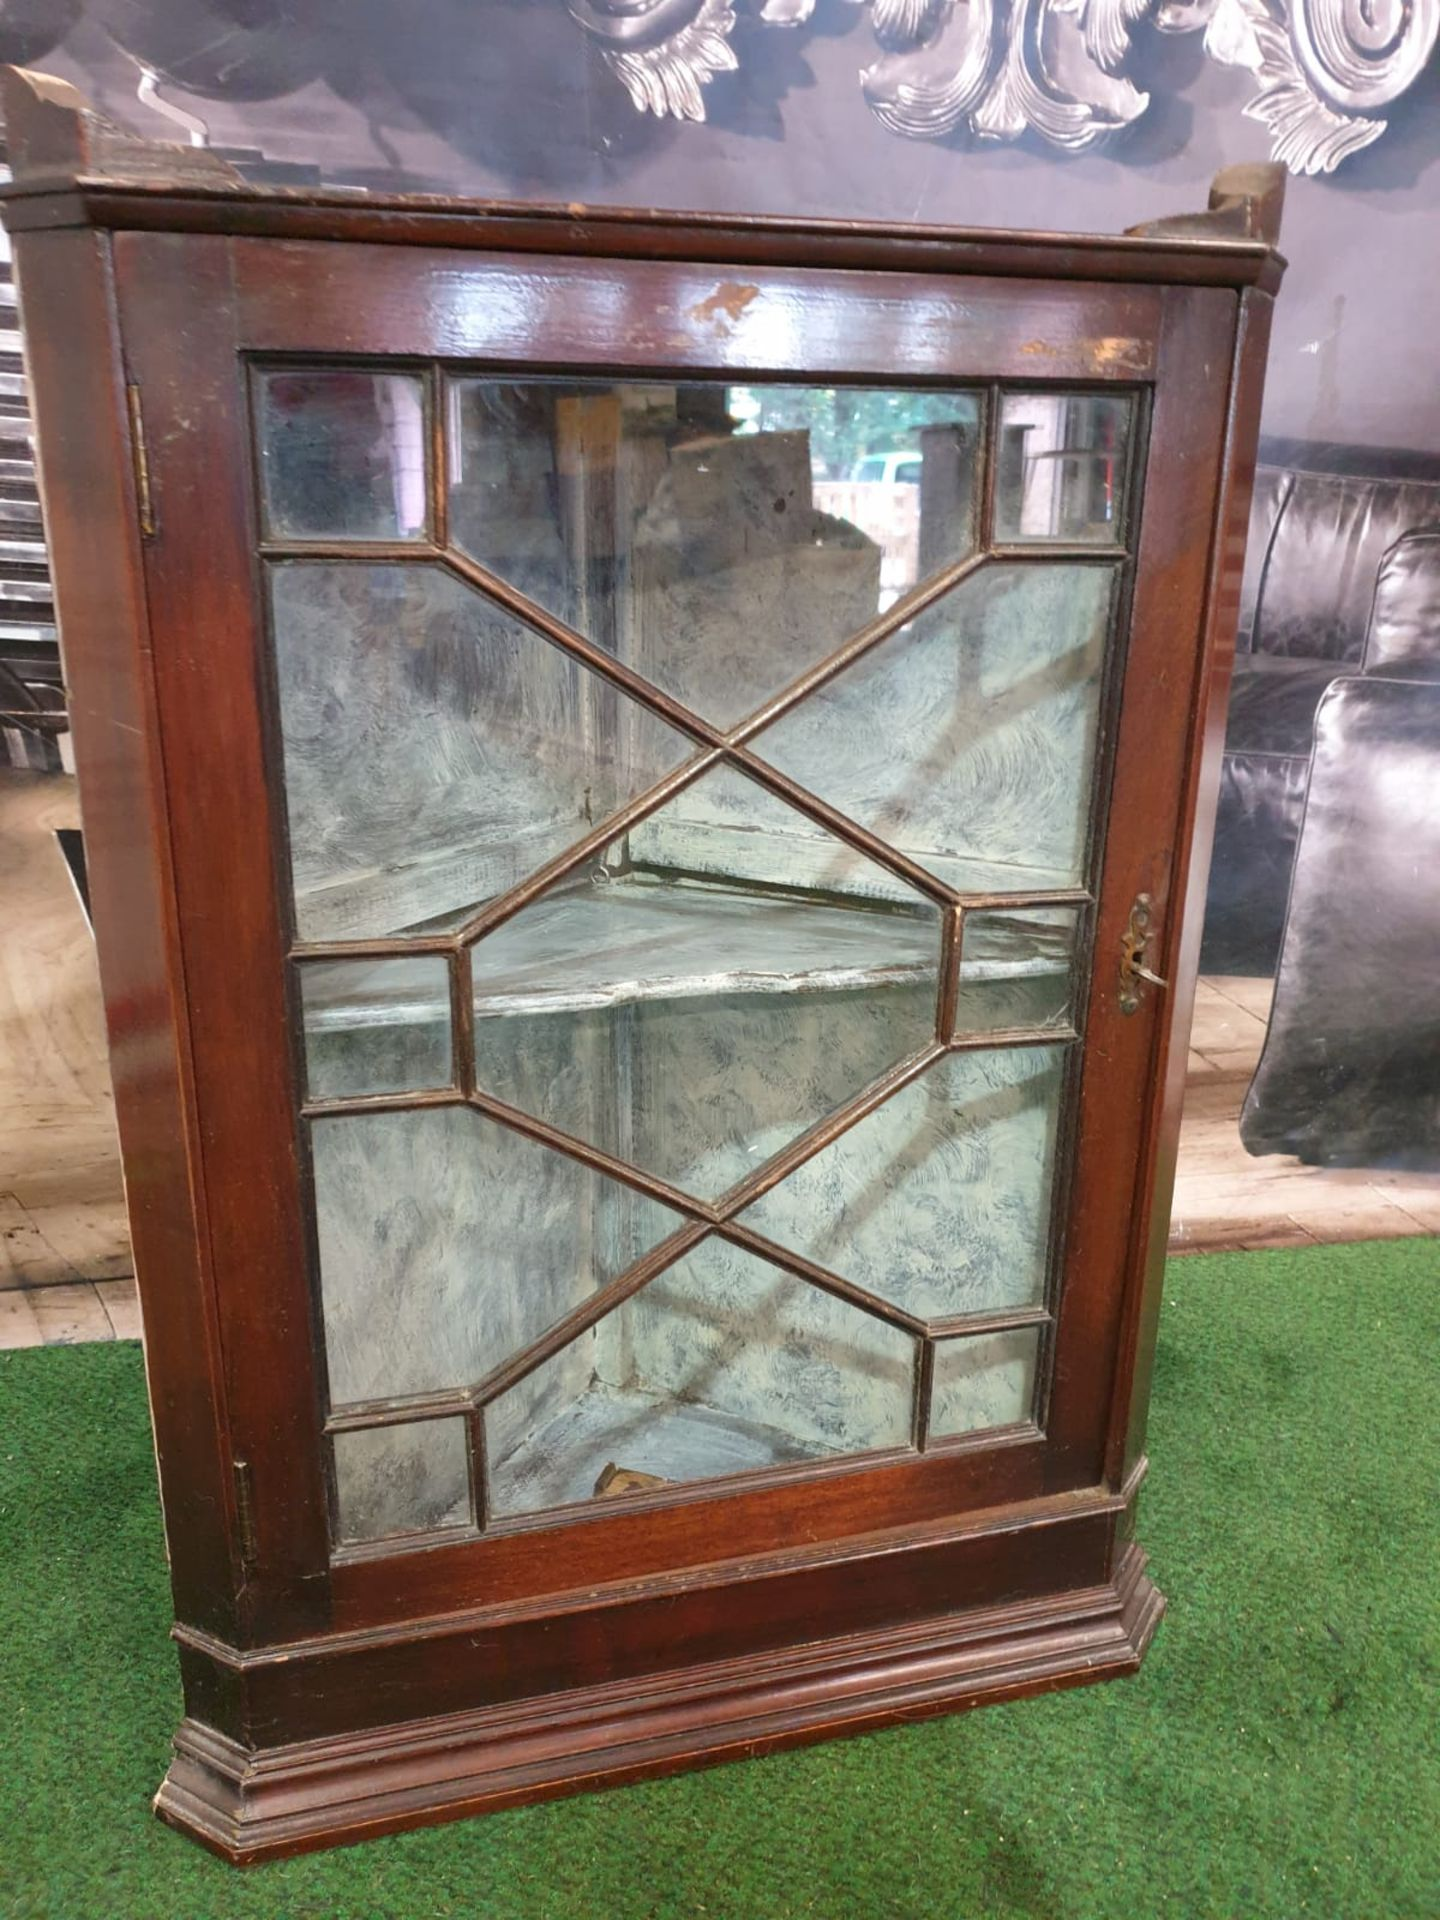 Mahogany glass corner cabinet top plinth a single glaszed door interior with two shelves 53 x 37 x - Image 2 of 3